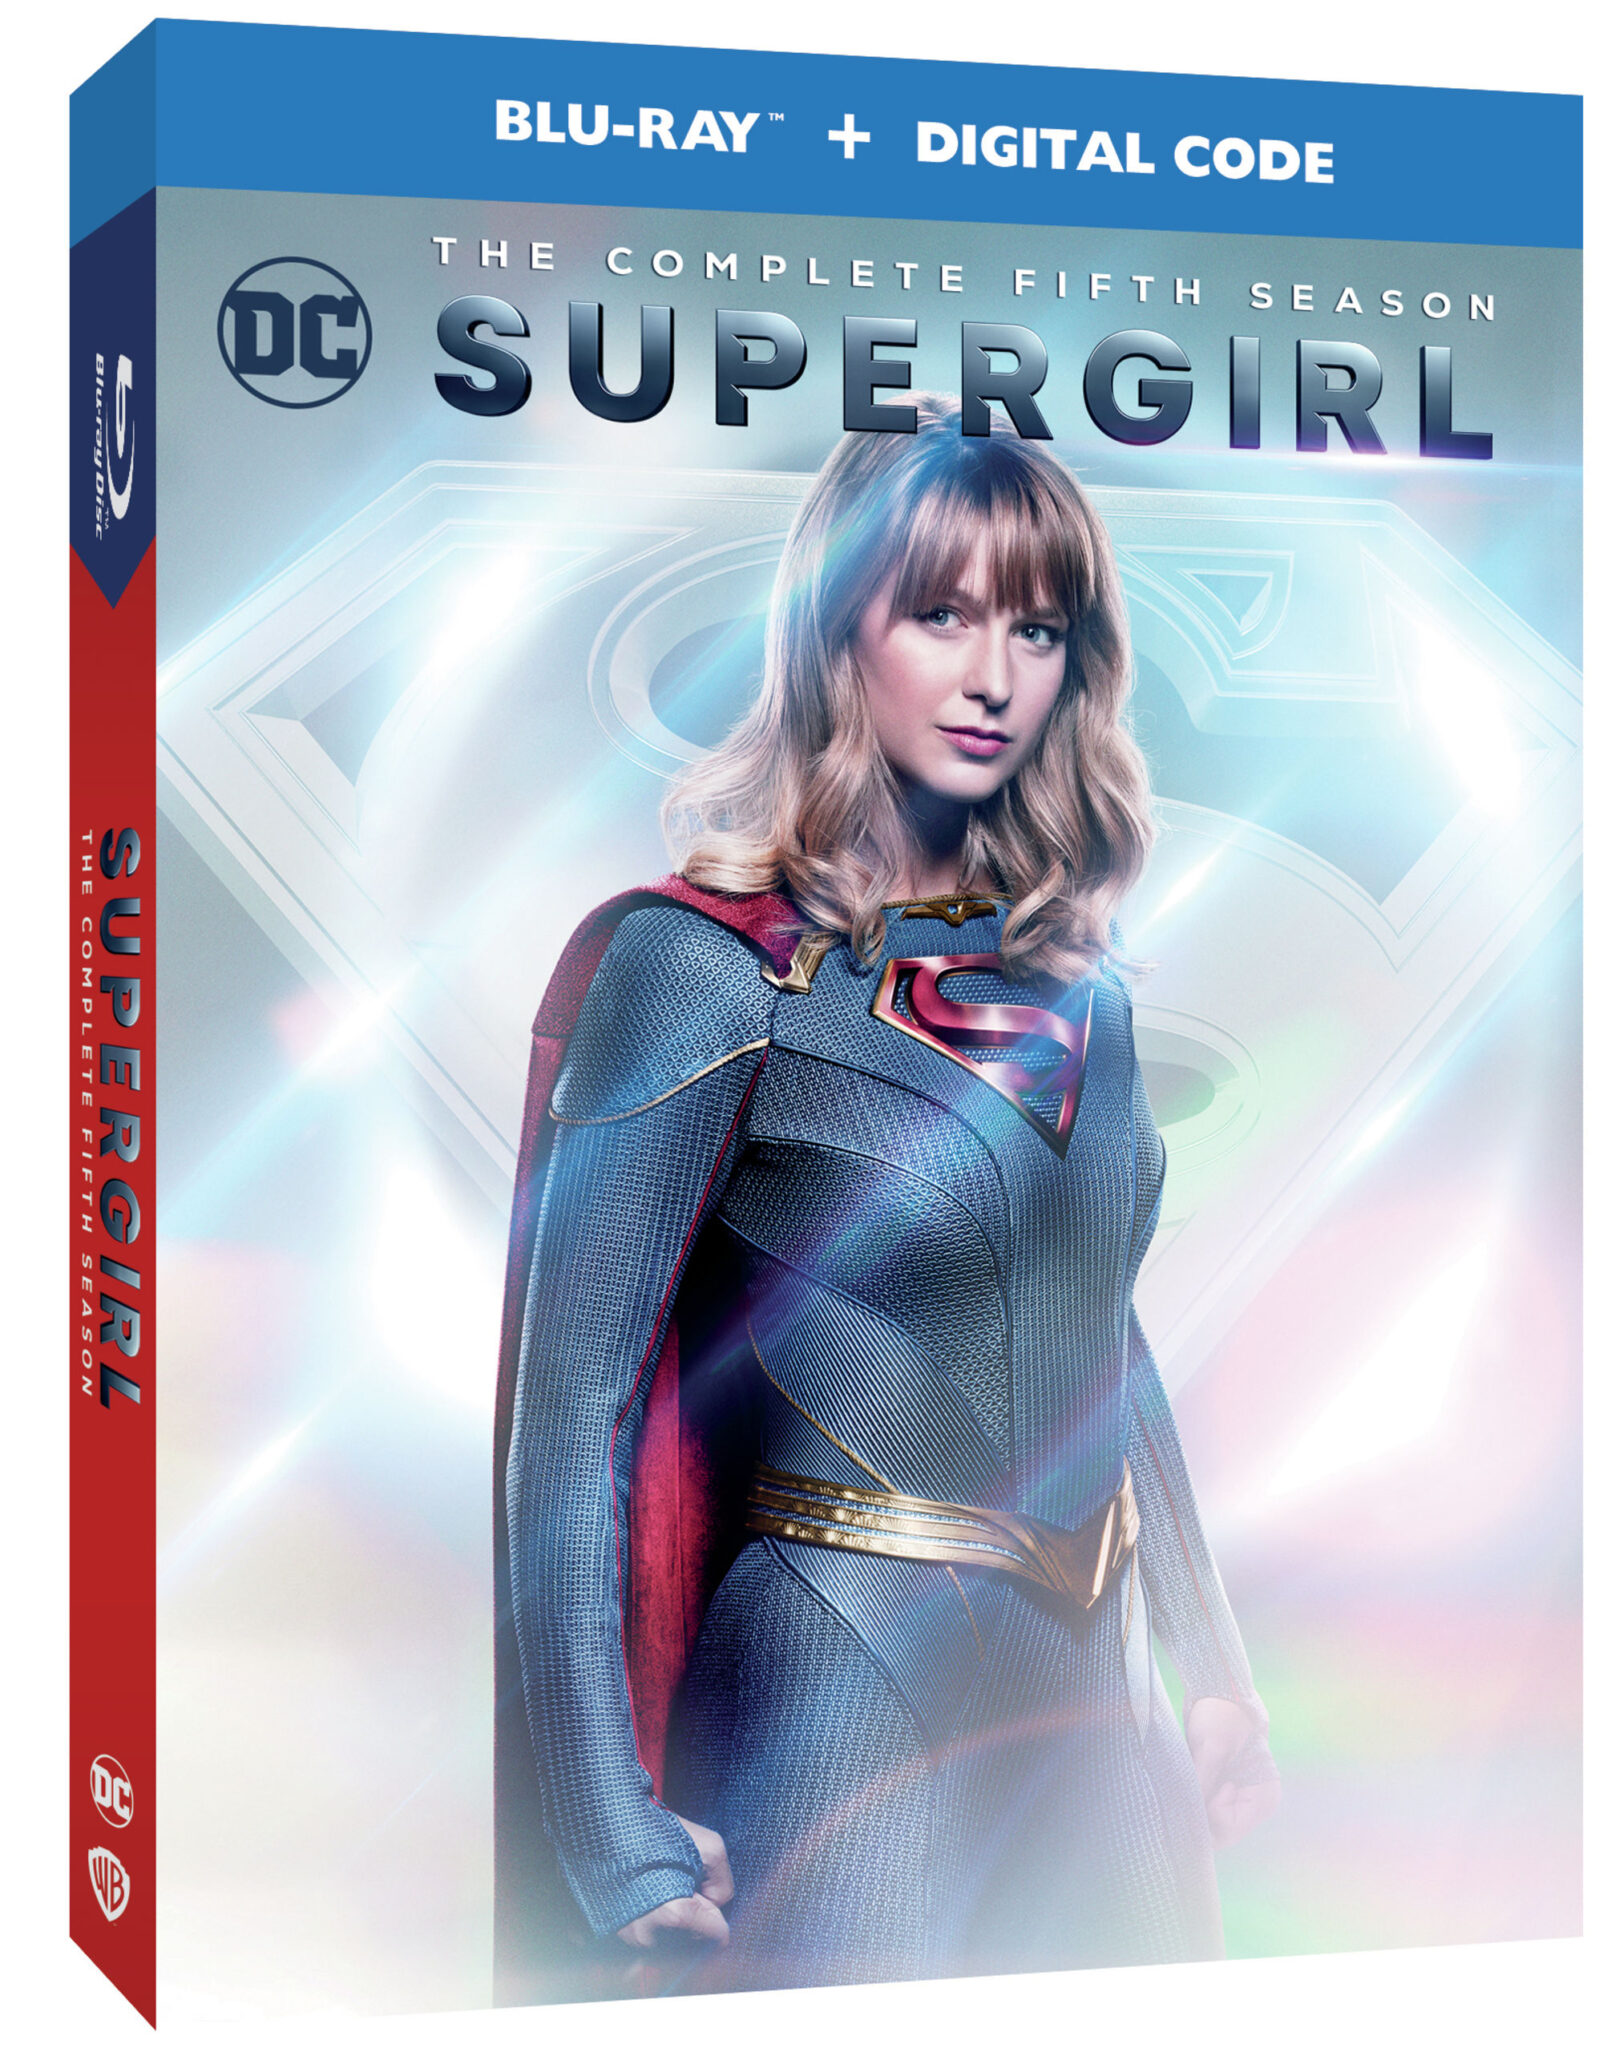 Supergirl: The Complete Fifth Season on DVD 9/8!